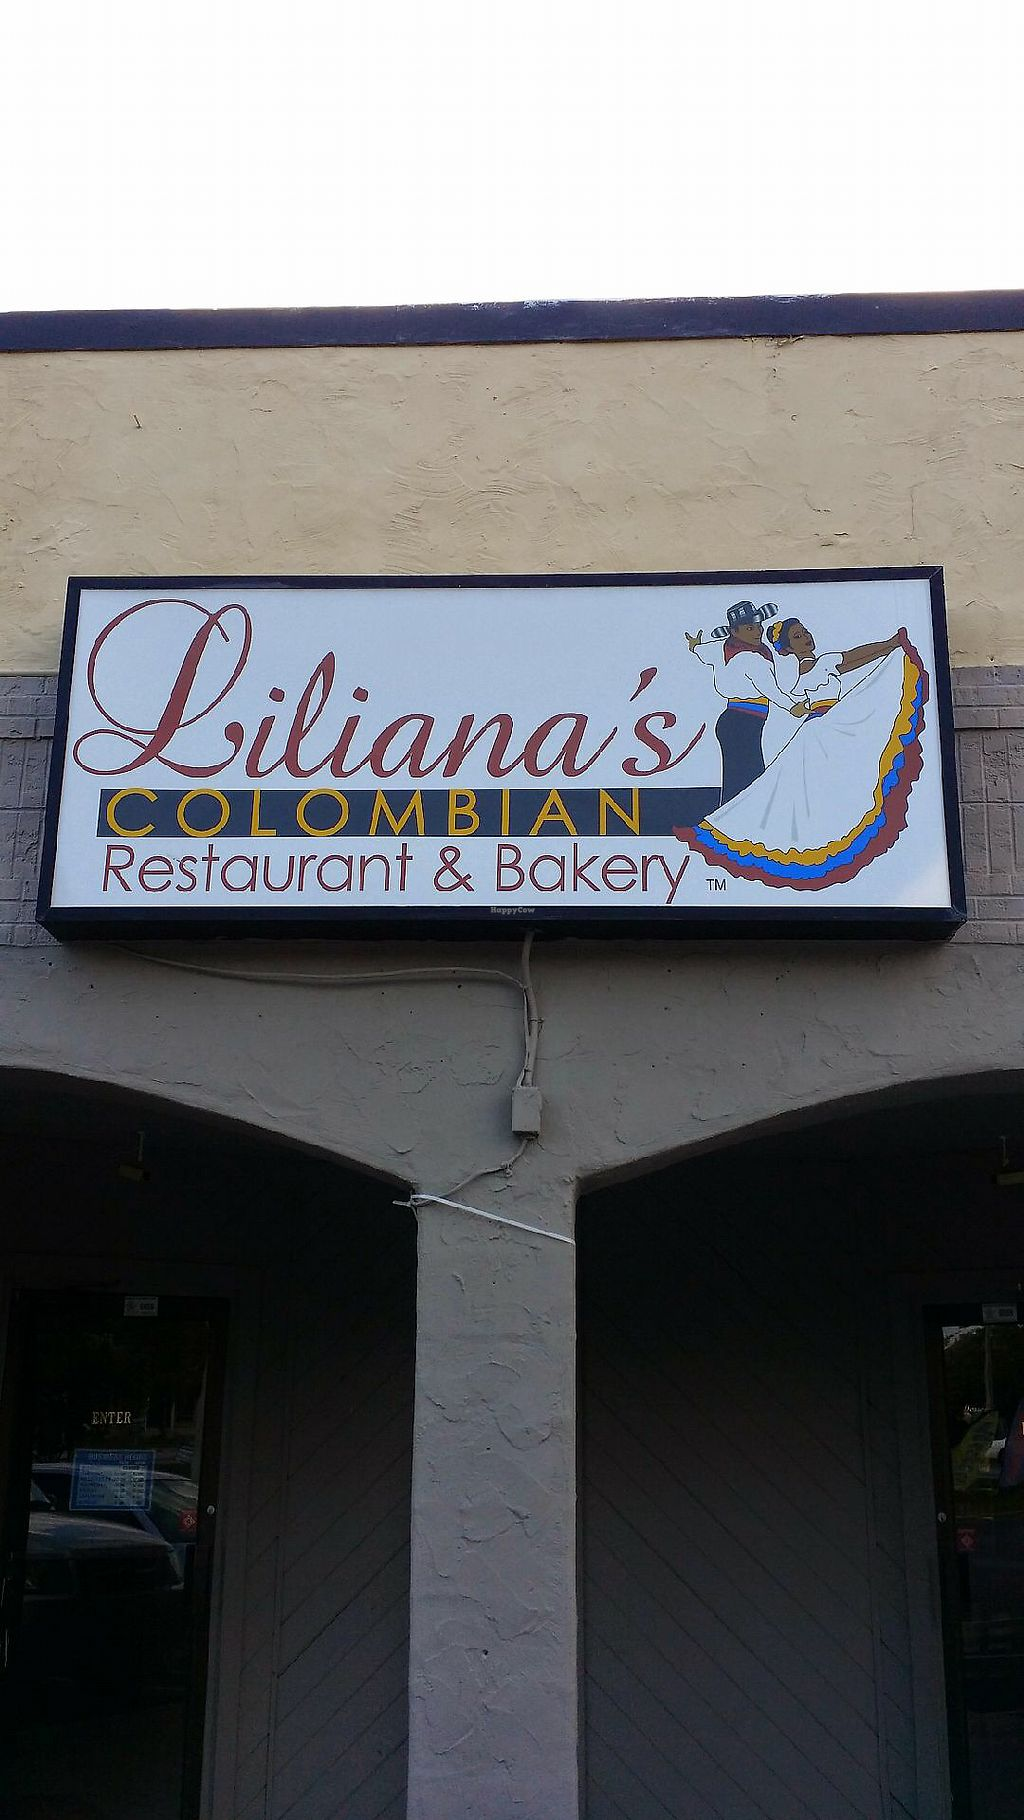 """Photo of Liliana's Colombian Restaurant & Bakery  by <a href=""""/members/profile/LiloVee"""">LiloVee</a> <br/>Front sign <br/> April 3, 2018  - <a href='/contact/abuse/image/105650/380390'>Report</a>"""